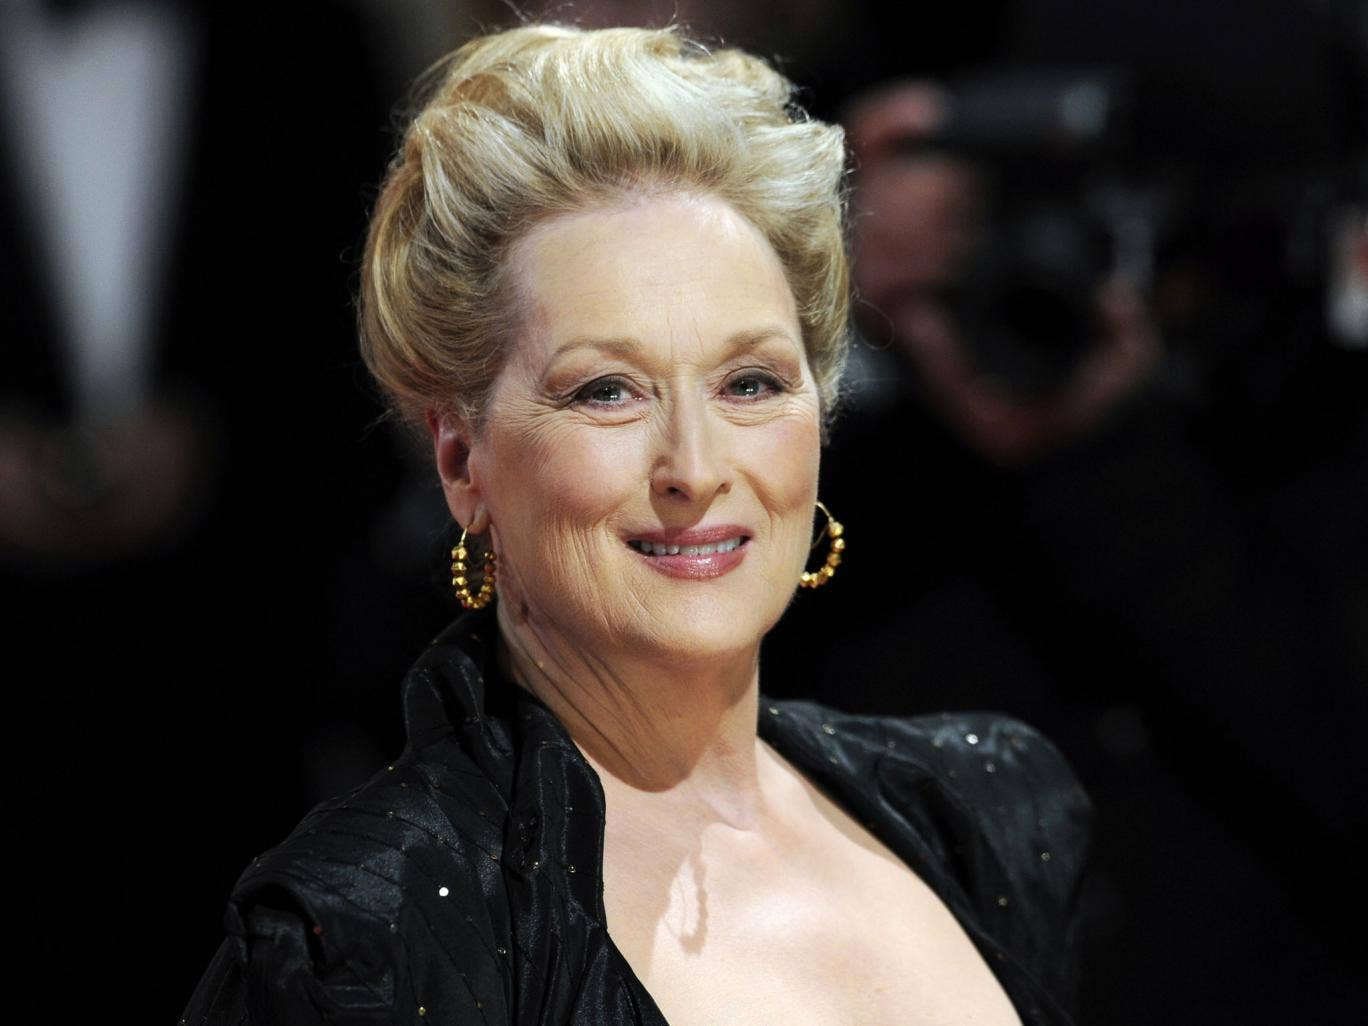 Meryl Streep is in final talks to play Emmeline Pankhurst in Sarah Gavron's new historical drama Suffragette